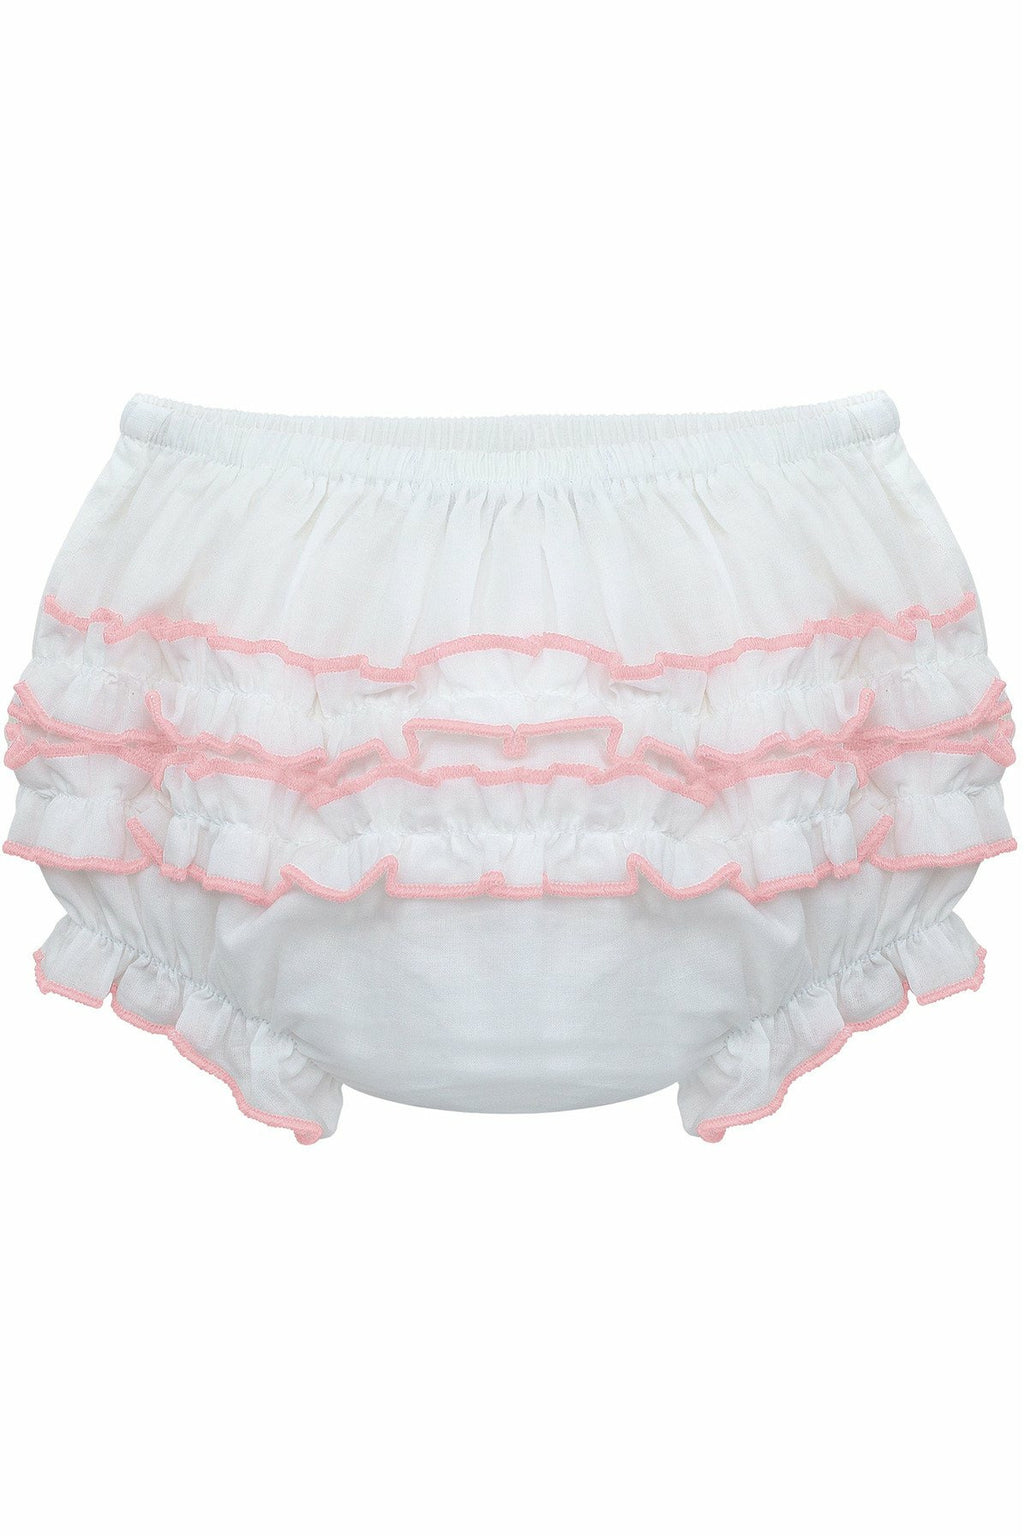 Baby Girls Ruffle Diaper Covers Pink Trim